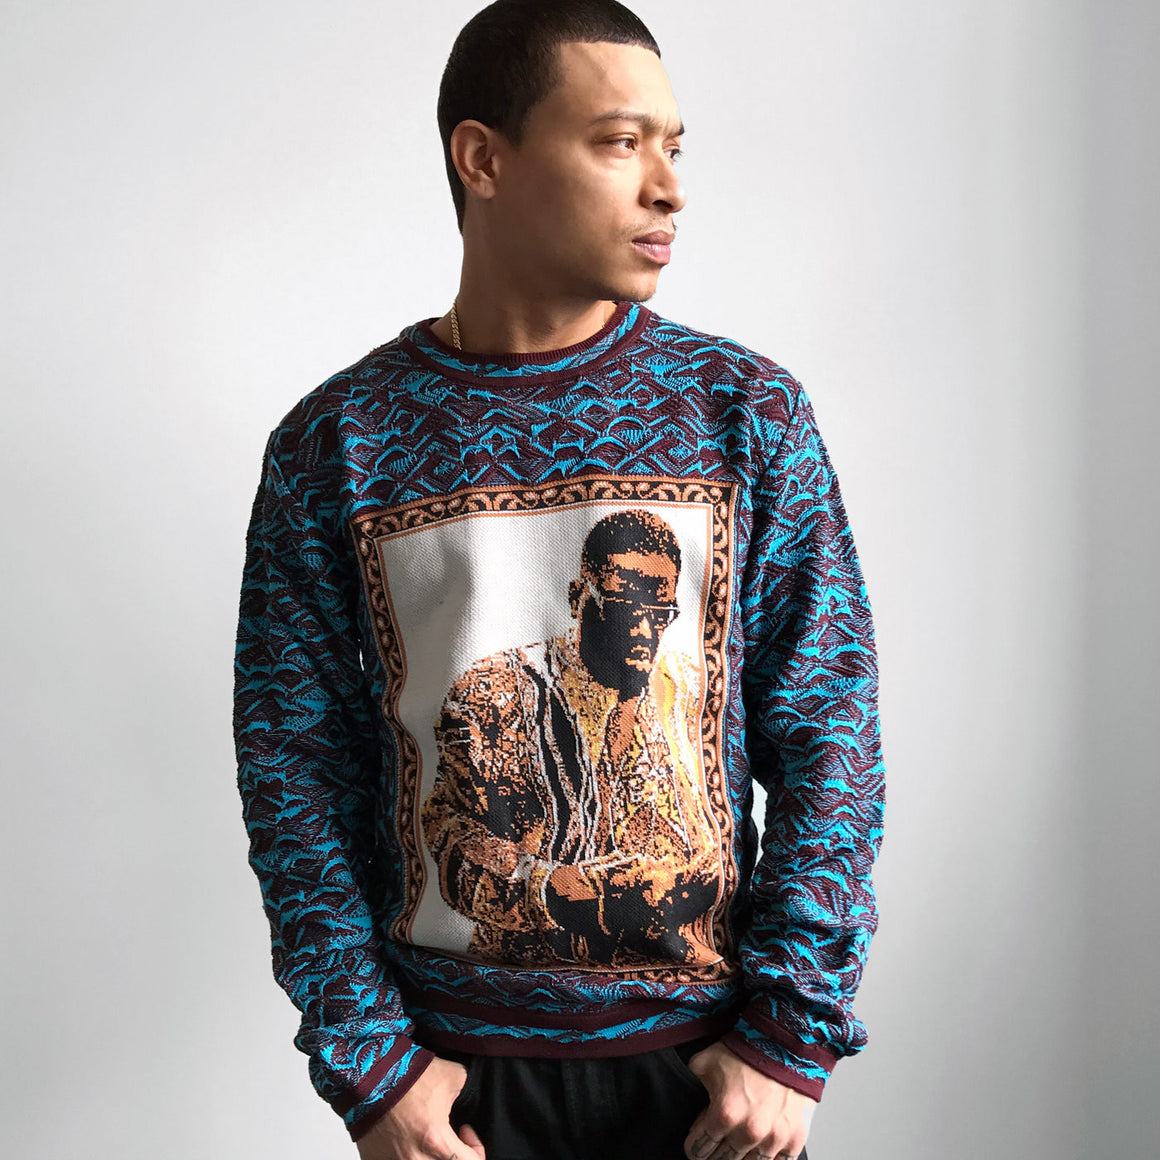 COOGI ART BASEL CREWNECK 3, Ltd. Ed.